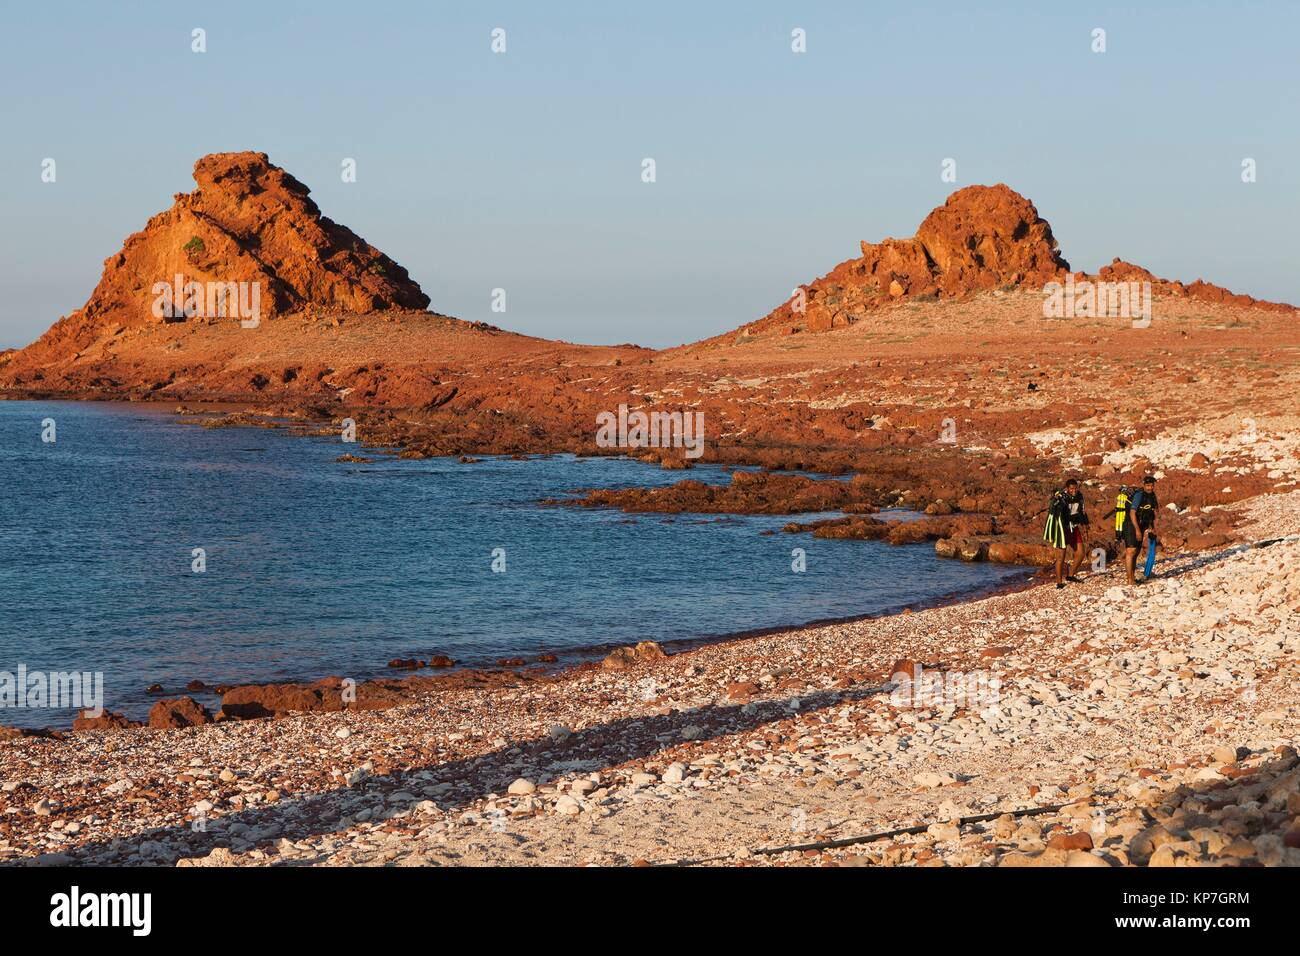 Scuba divers, Ras Dihamri Marine Reserve, Socotra island, listed as World Heritage by UNESCO, Aden Governorate, - Stock Image